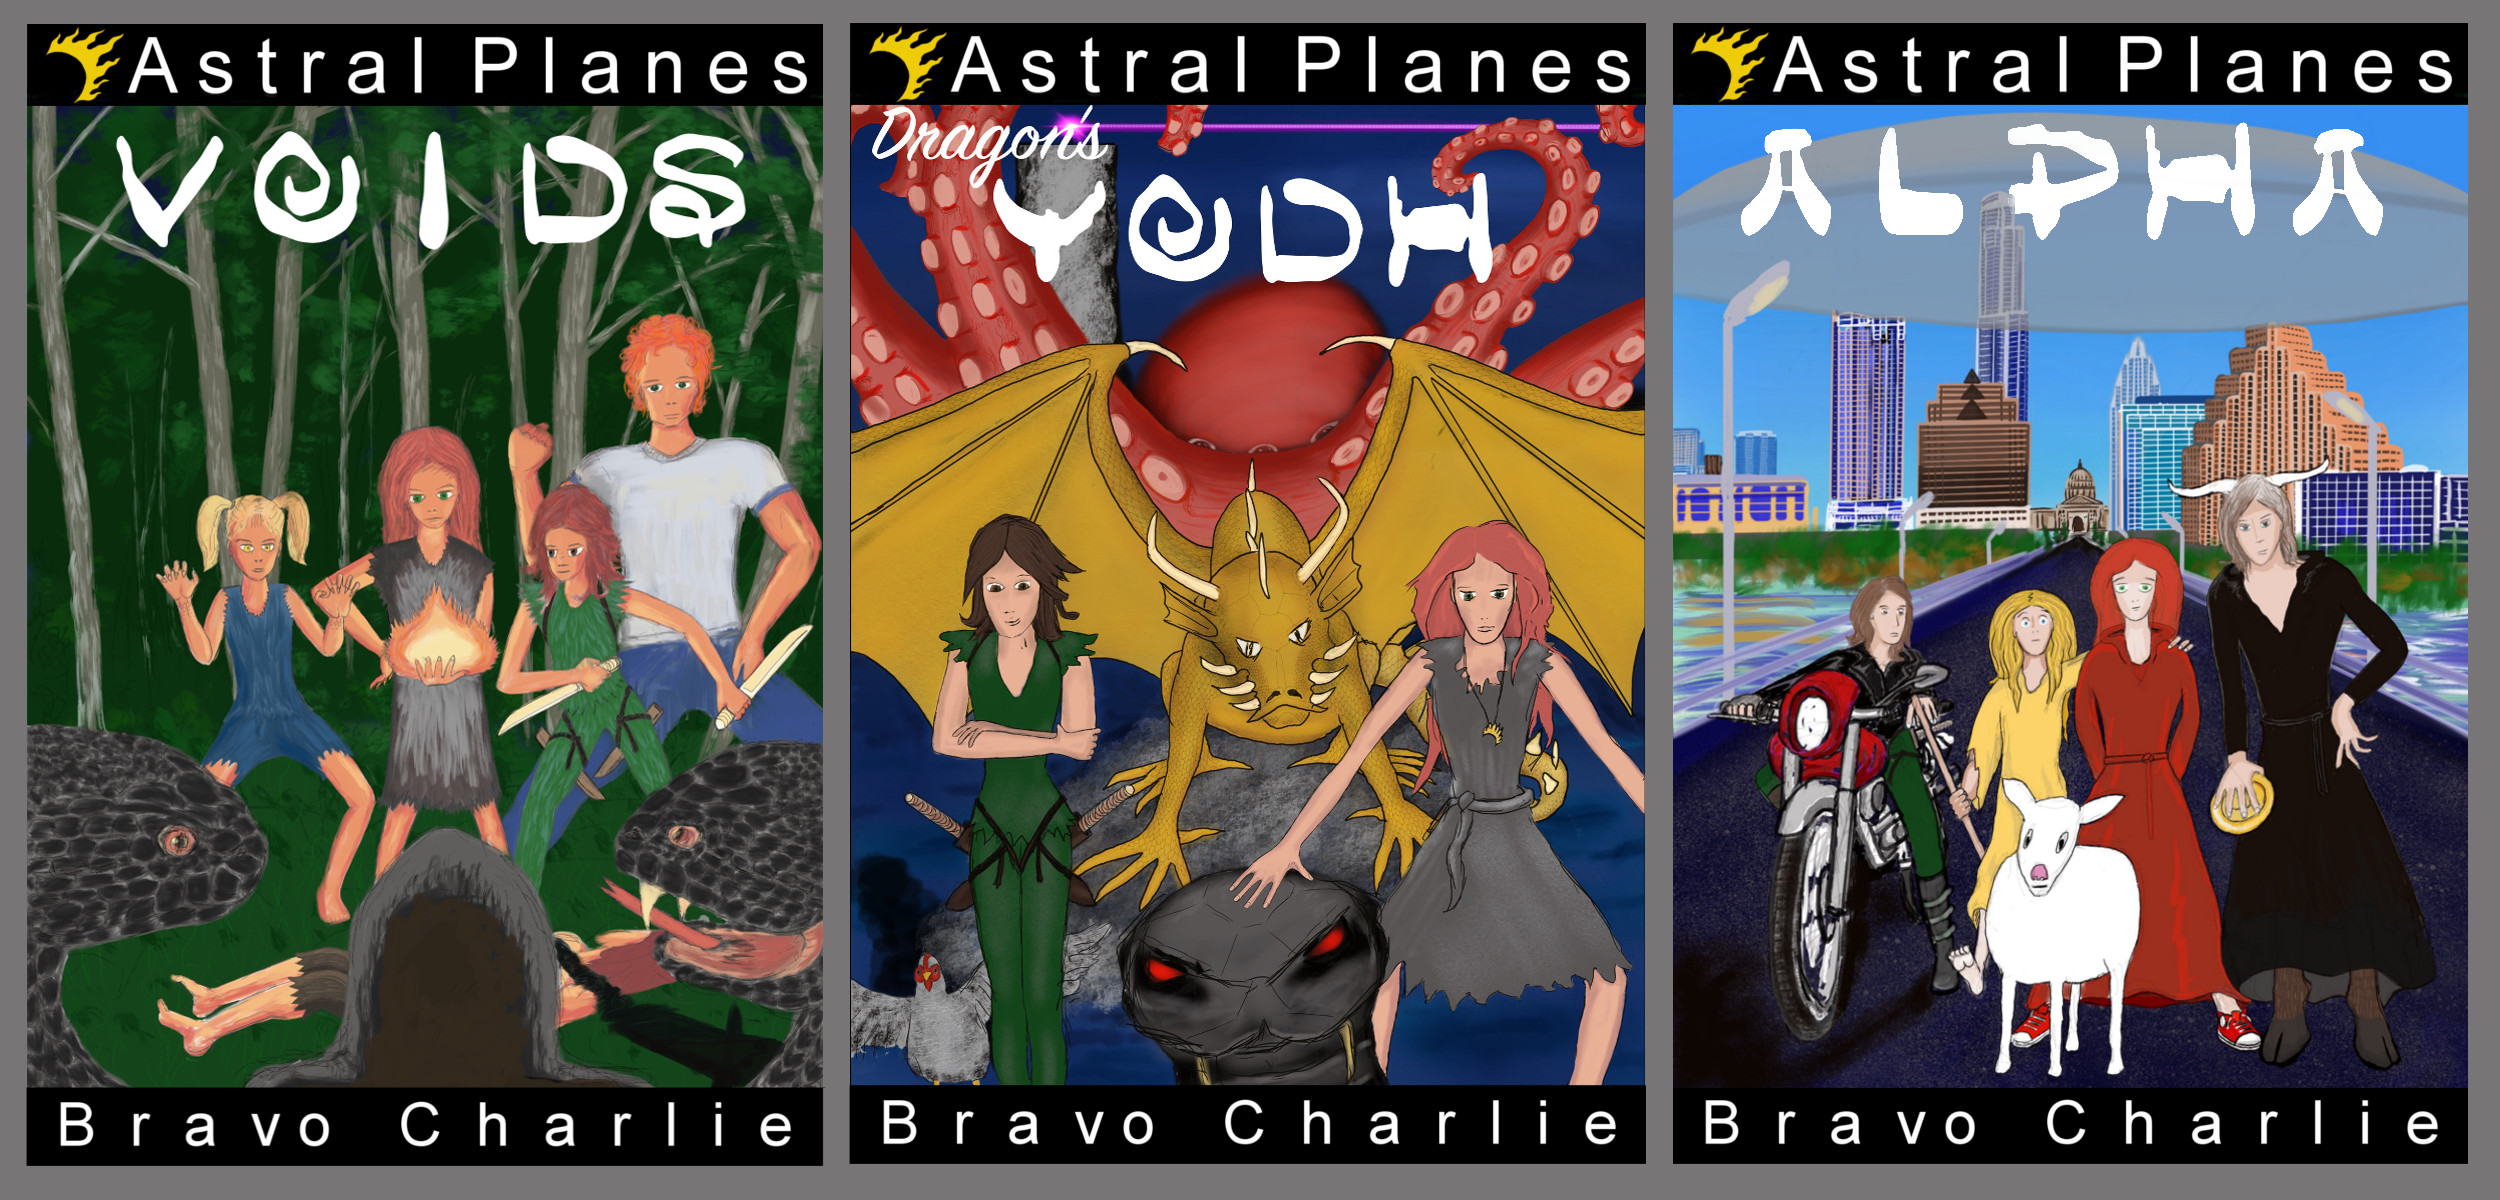 Astral Planes Fantasy Series by Bravo Charlie